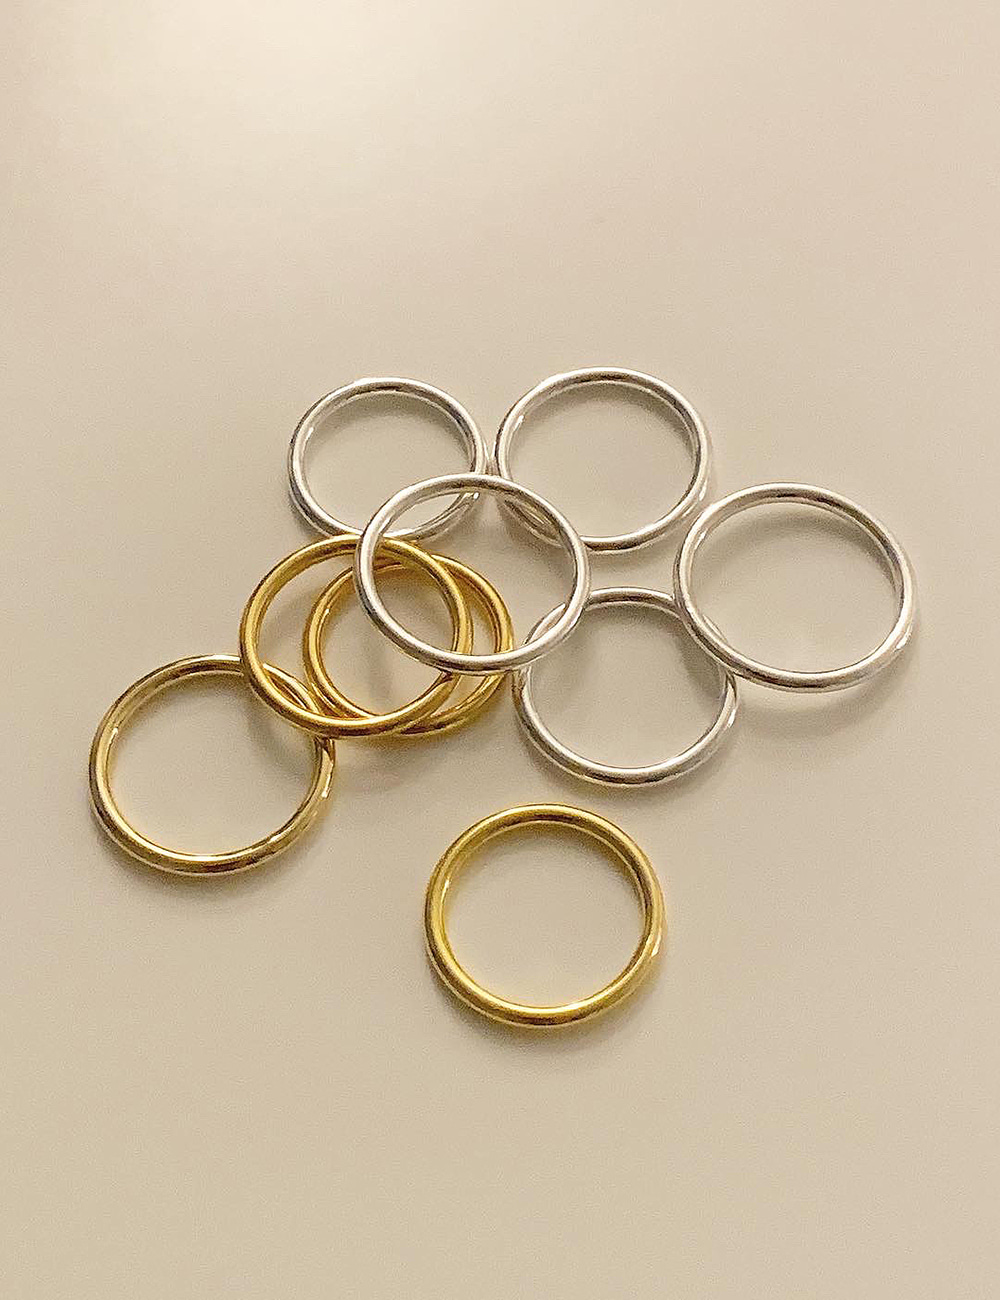 (silver 92.5) Daily ring / 2mm